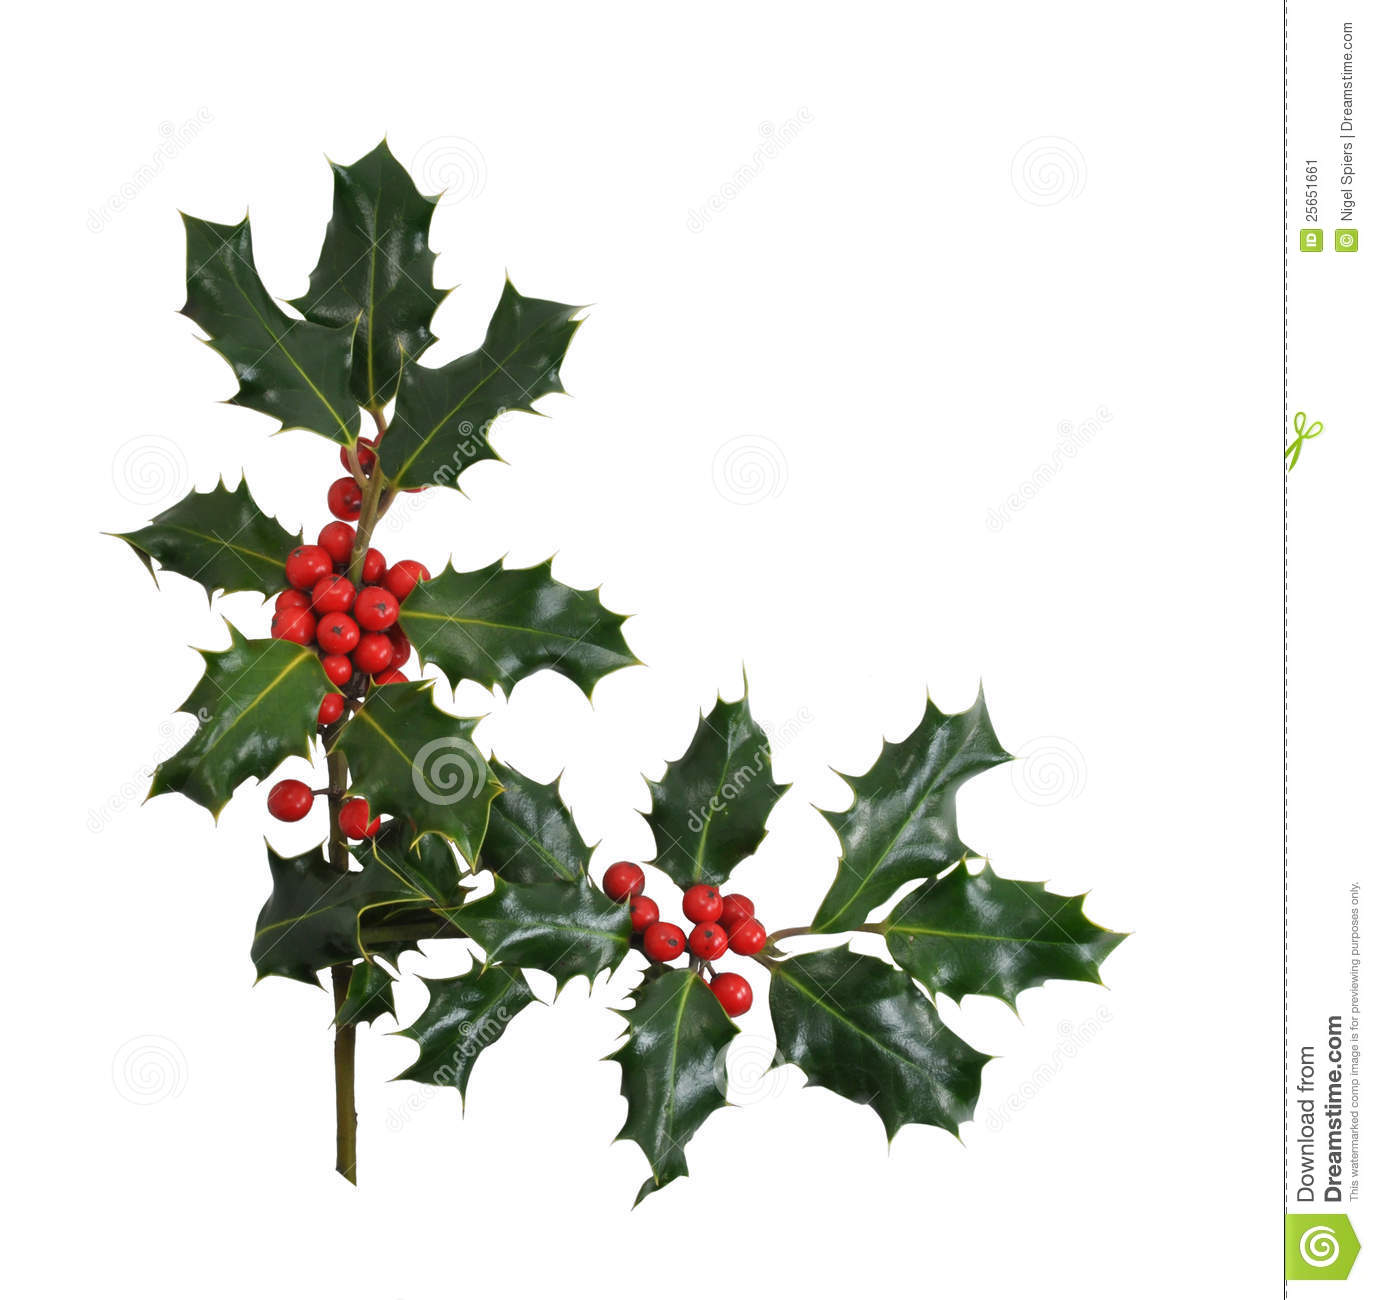 Christmas holly border isolated on white stock image for Holl image